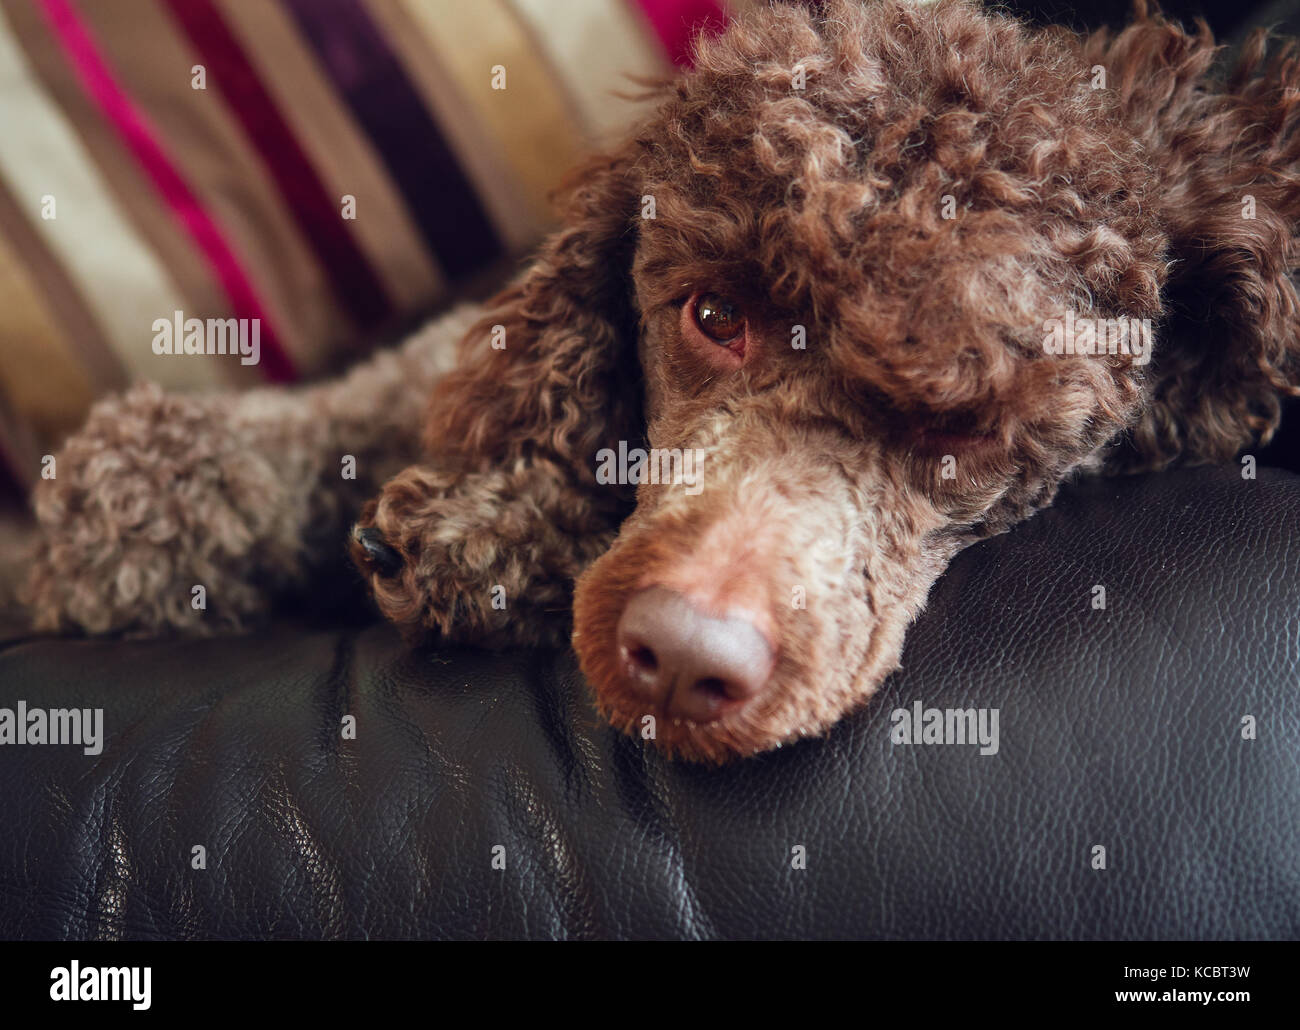 A chocolate miniature poodle sleeping on a sofa. - Stock Image